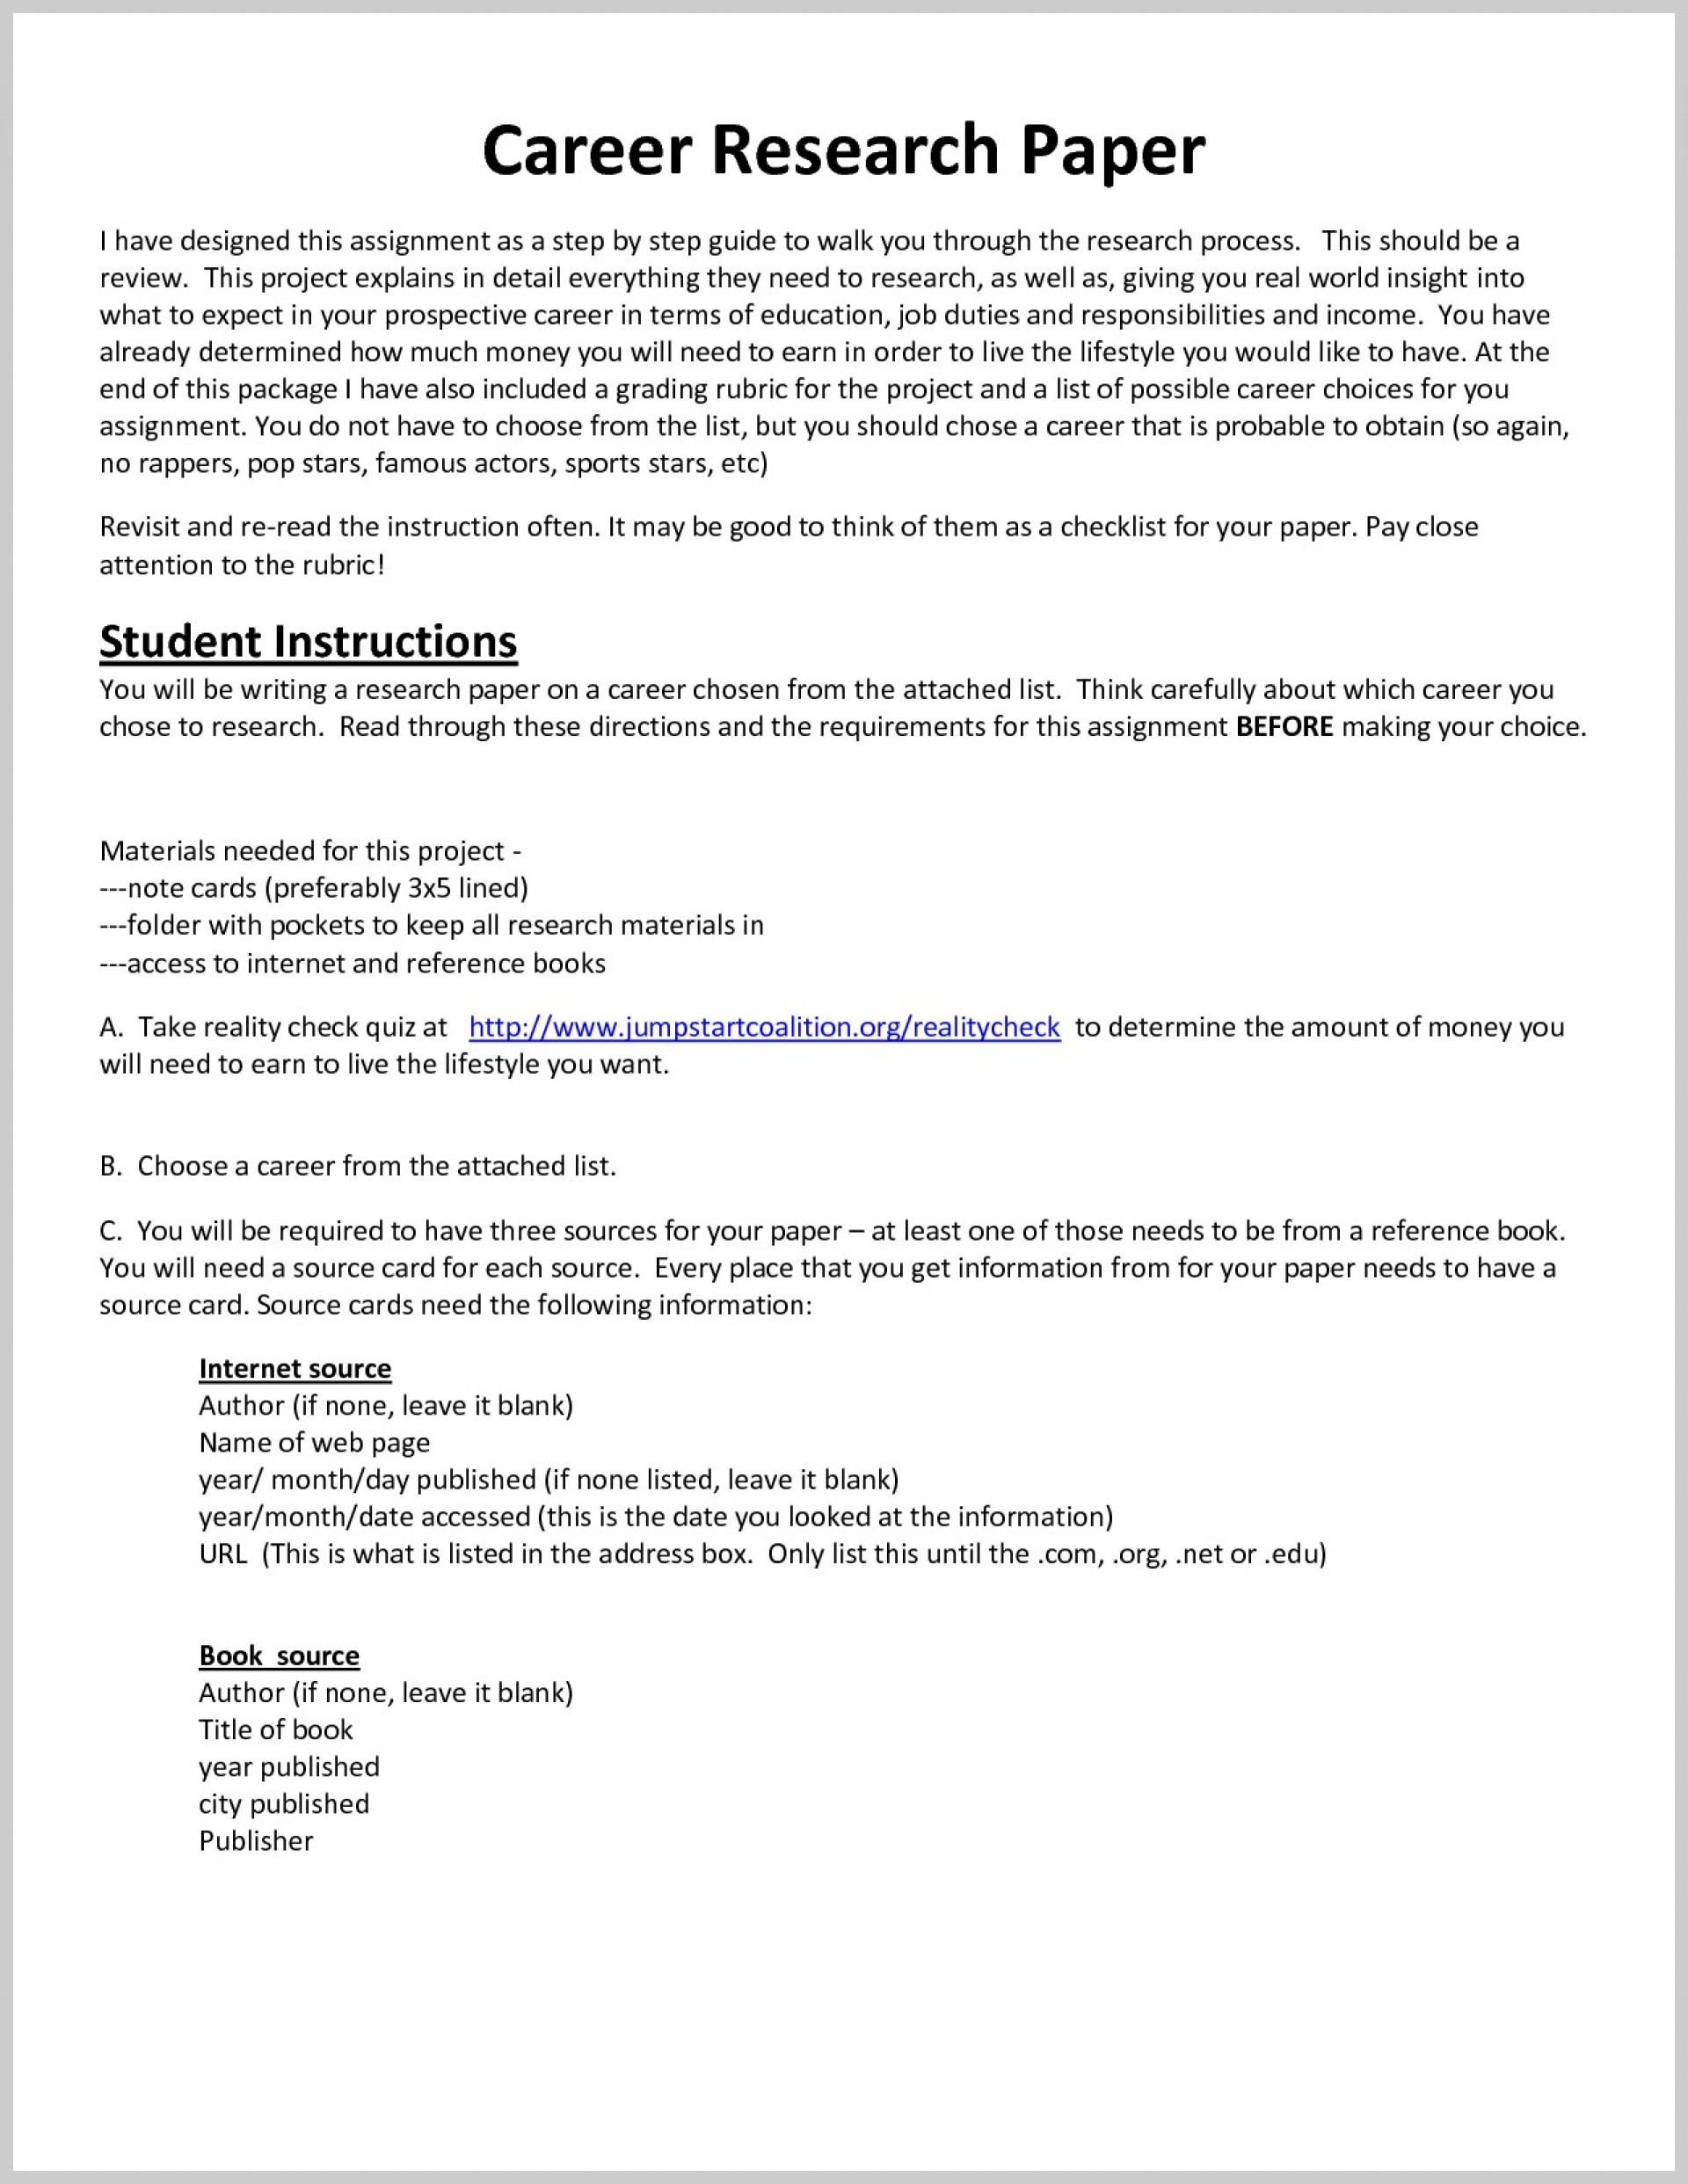 001 Research Paper Write Career Need Help Writing I An Essay Wondrous Rubric 1920